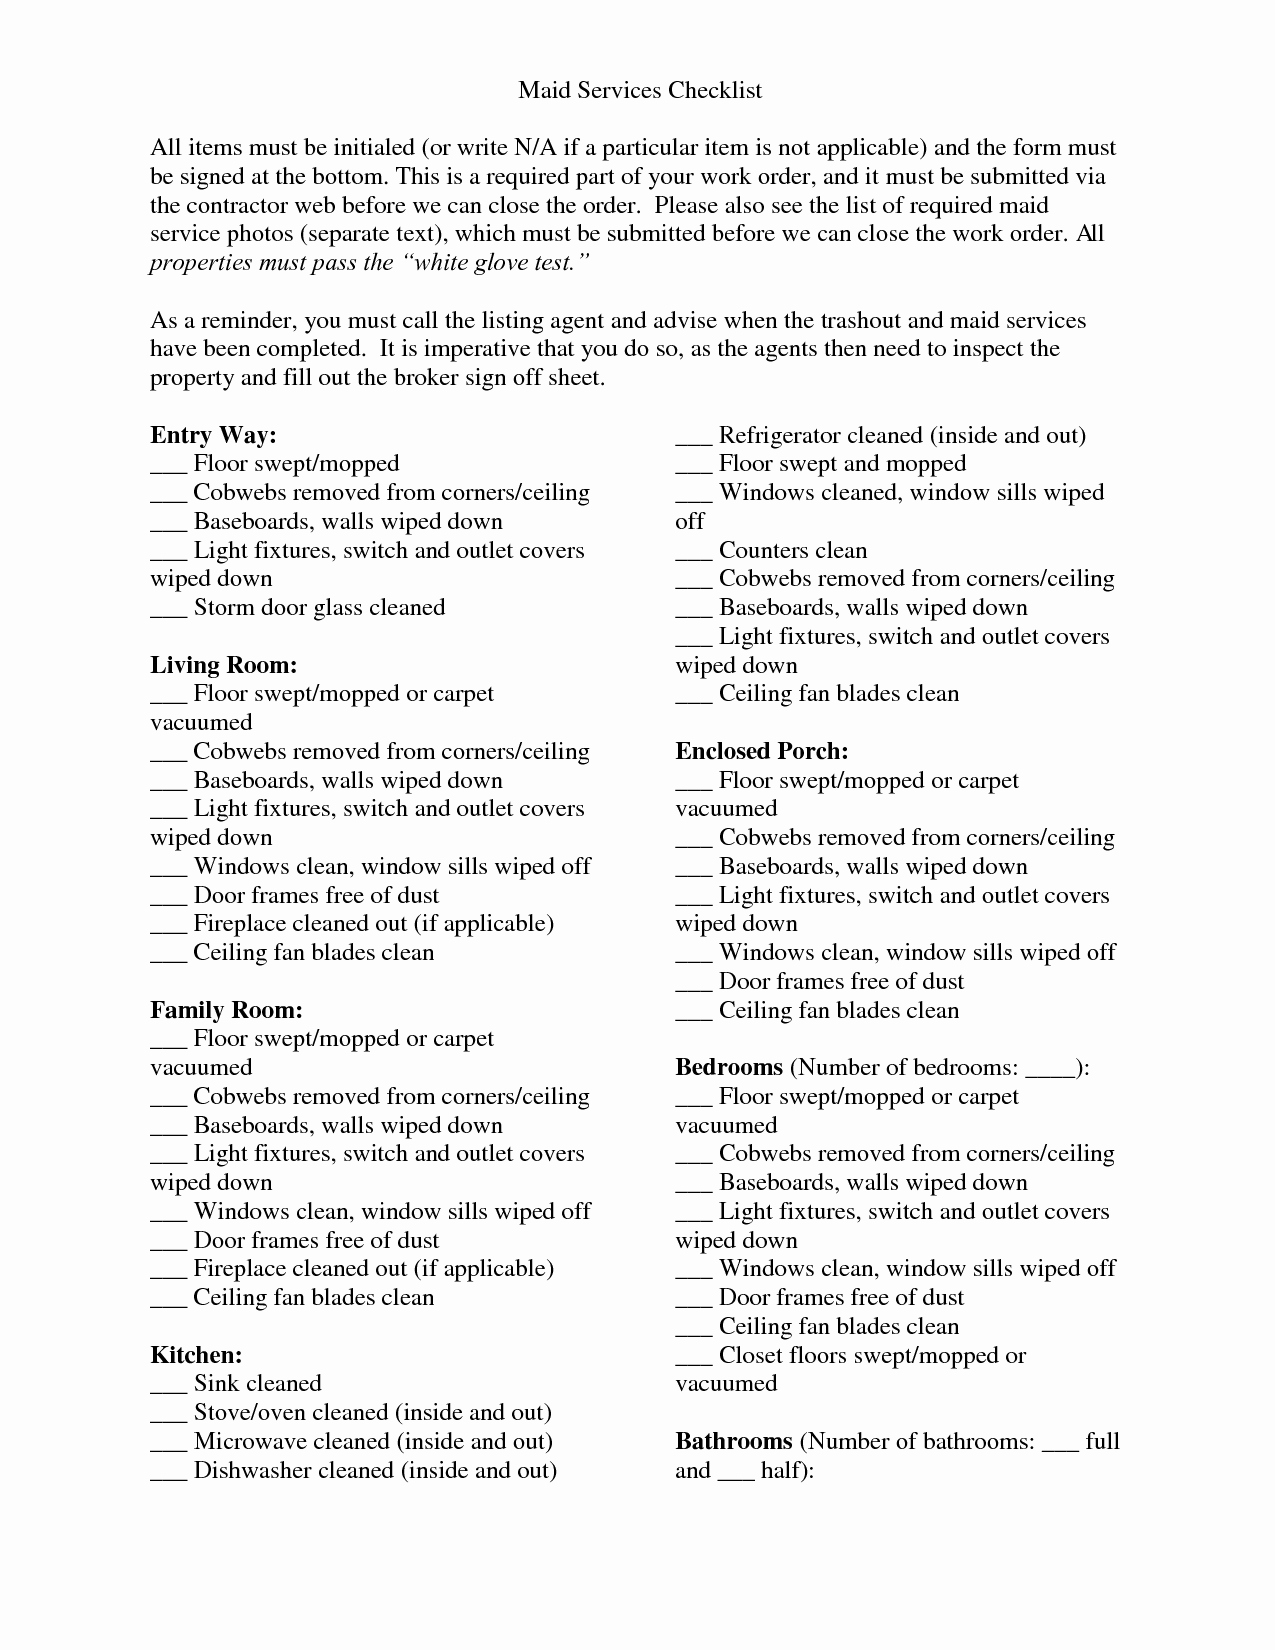 Professional House Cleaning Checklist Template Elegant Actual Maid Service Cleaning Checklist